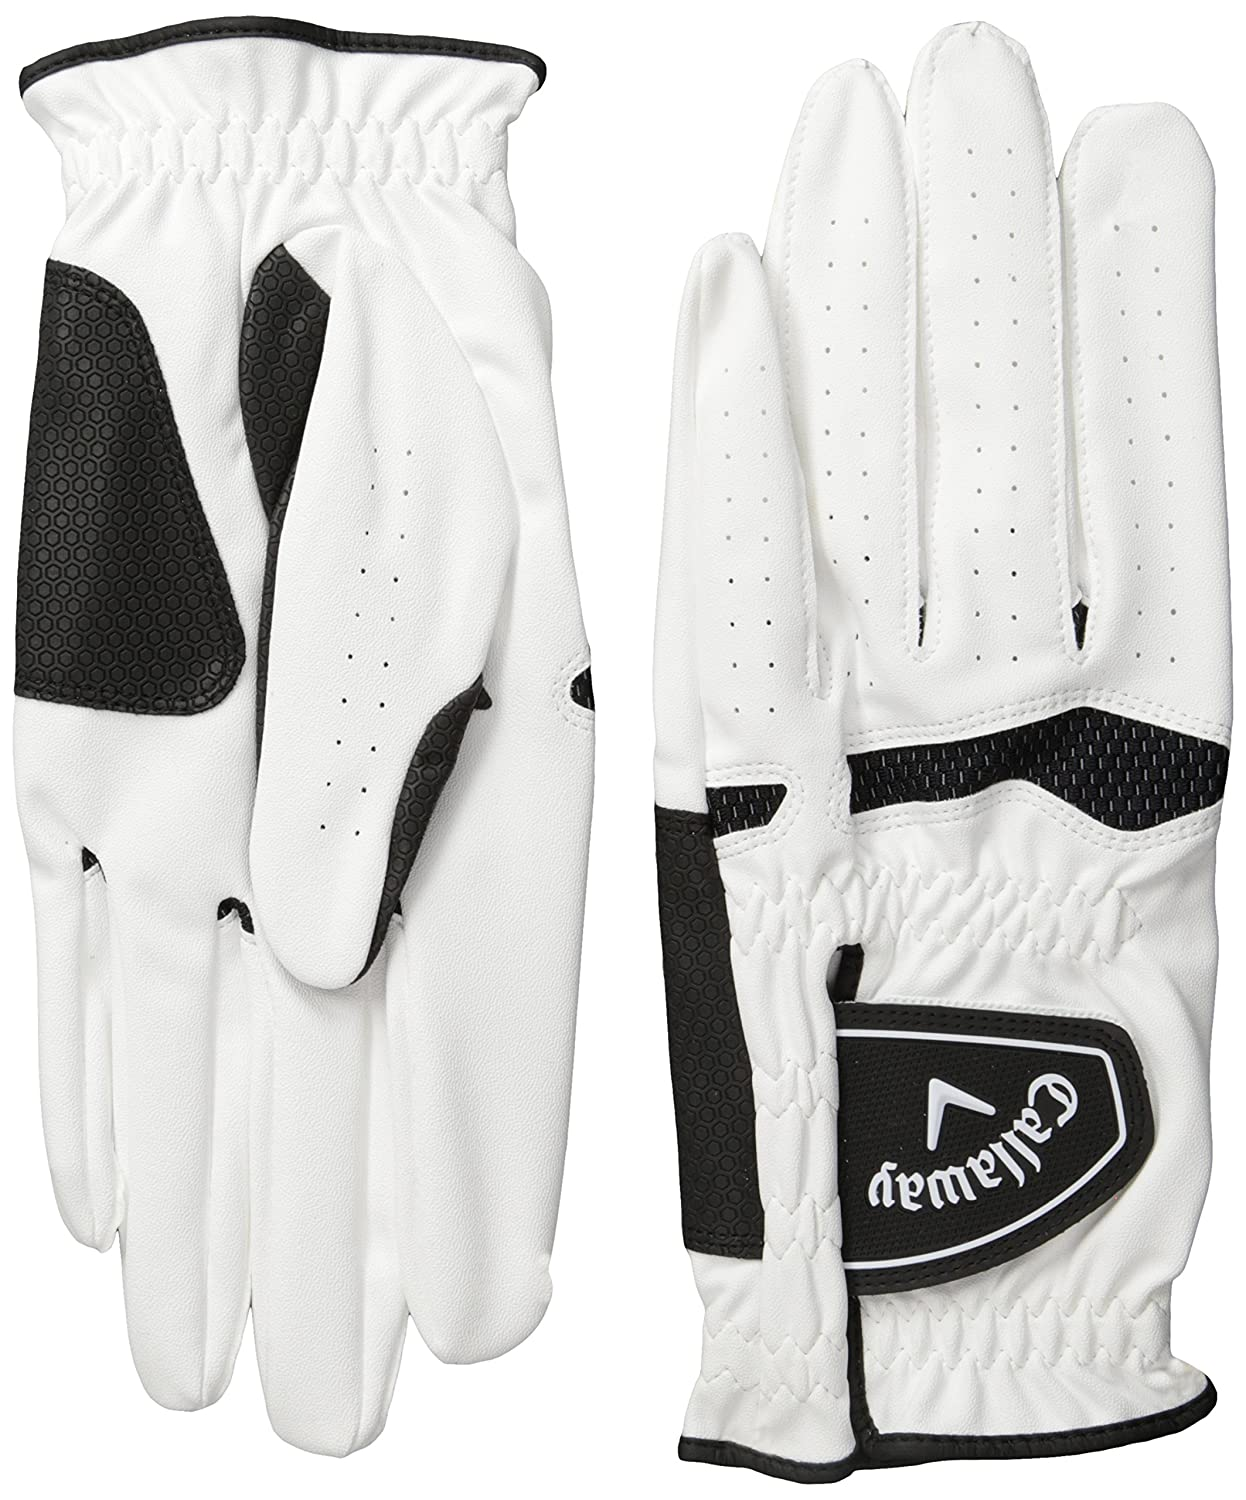 Black leather golf gloves - Callaway Men S Xtreme 365 Golf Gloves Pack Of 2